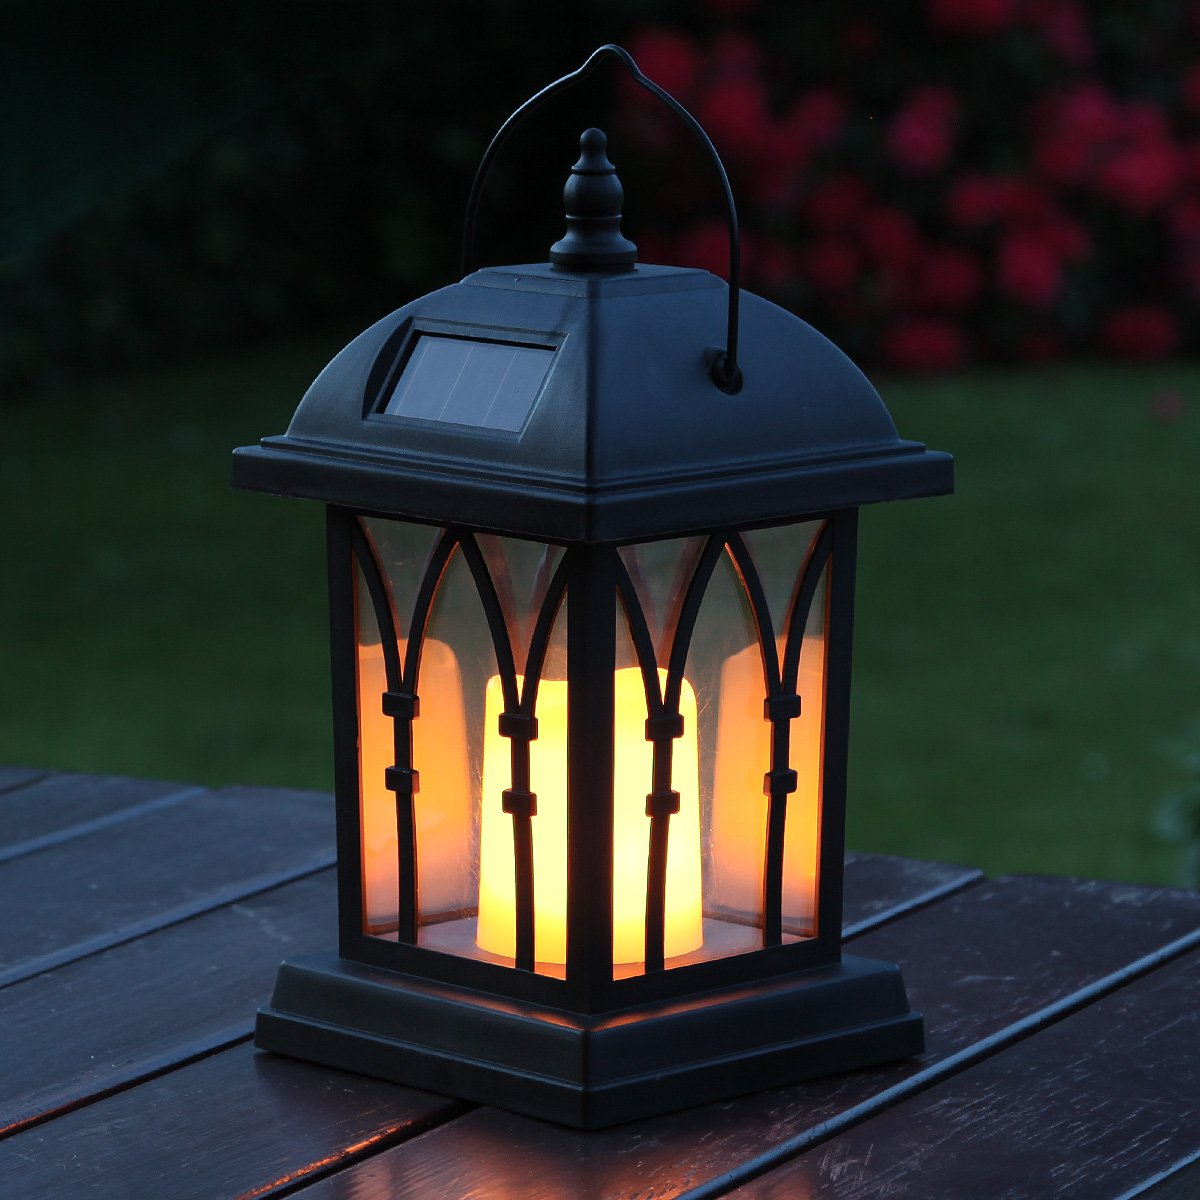 Festive Lights Garden Candle Lantern - Solar Powered - Flickering Effect - Amber LED - 27cm FL-2283